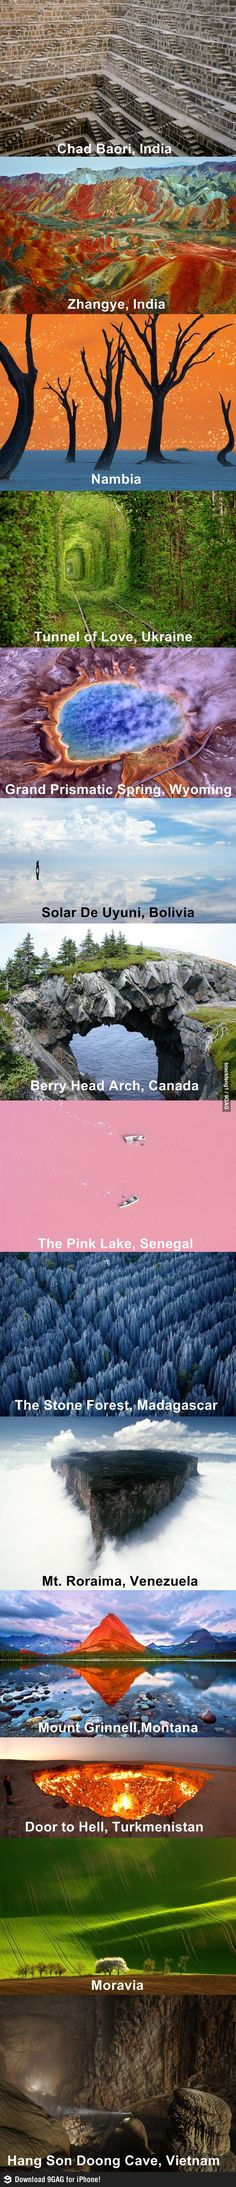 Places all over the world that look so unrealistic. Let me know if any of these are fake, please!